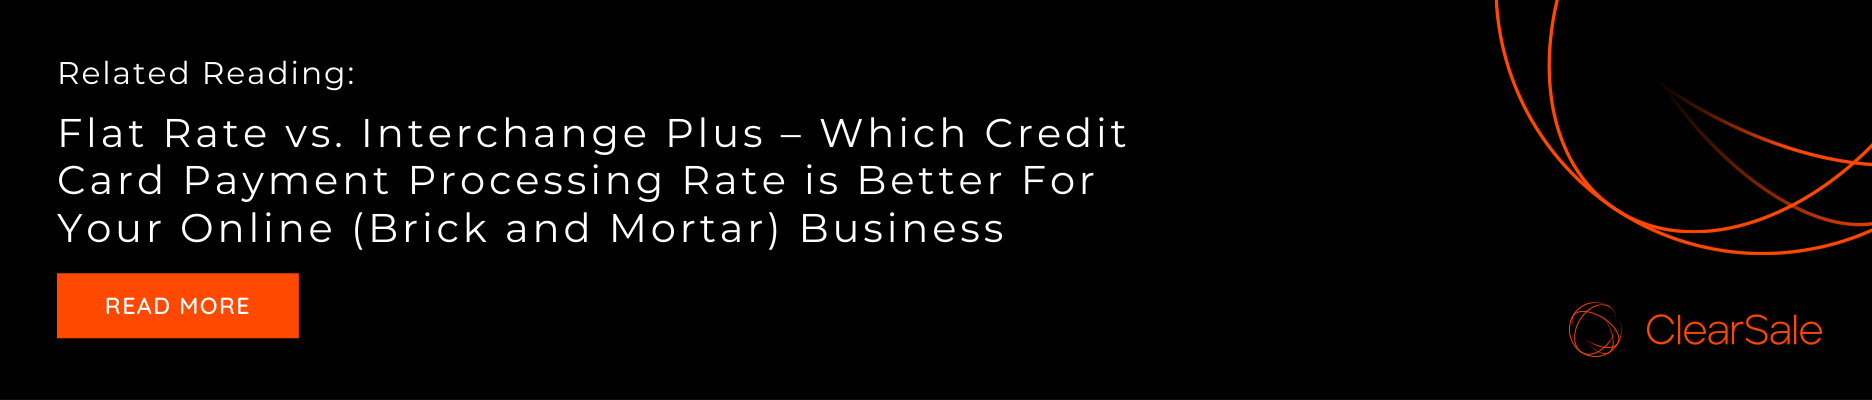 Related Reading: Flat Rate vs. Interchange Plus – Which Credit Card Payment Processing Rate is Better For Your Online (Brick and Mortar) Business